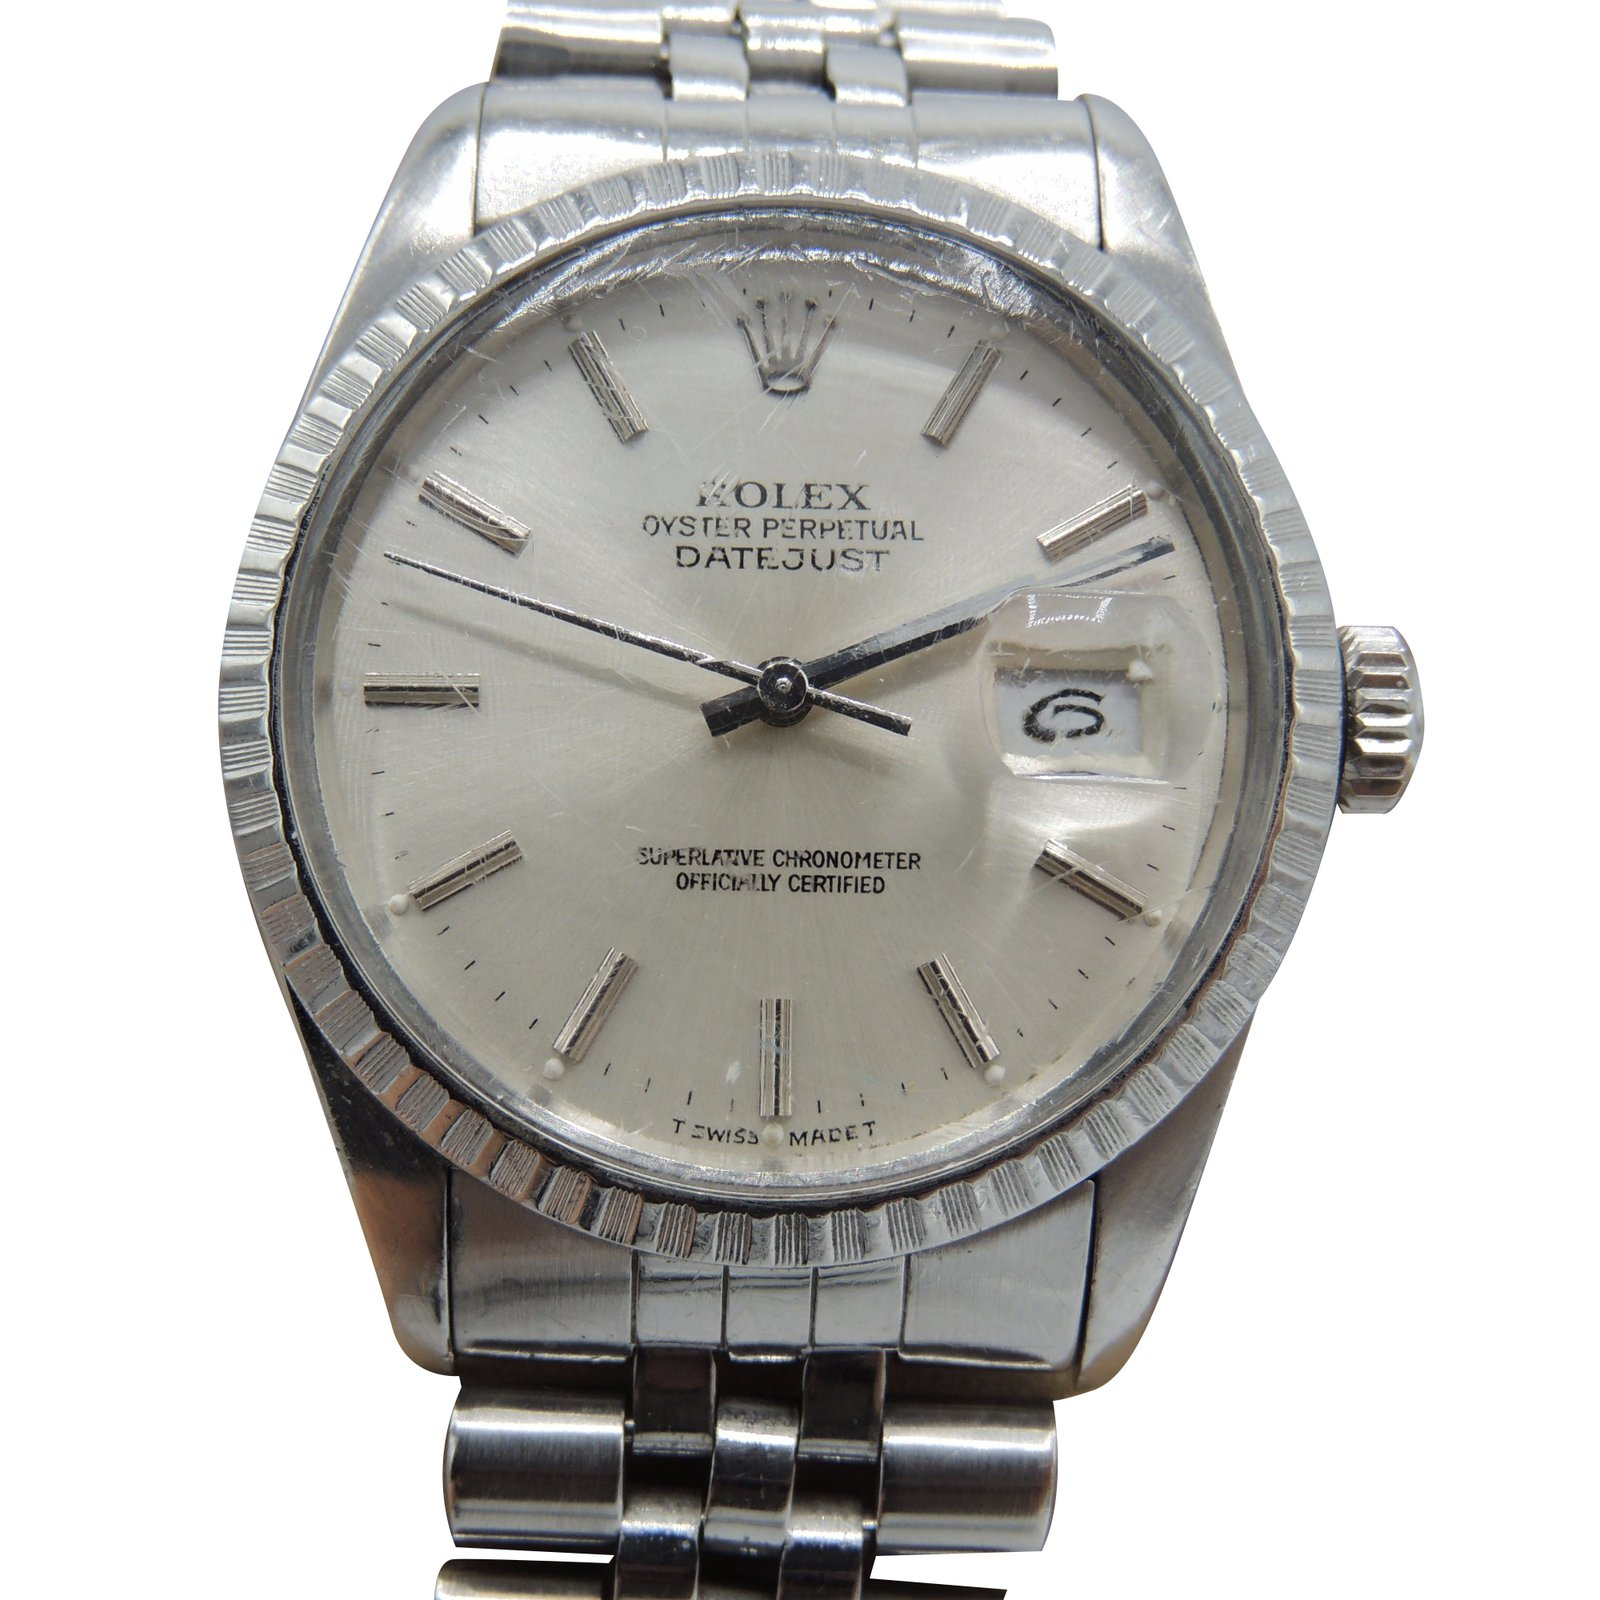 rolex perpetual amazon submariner watches com dp oyster date